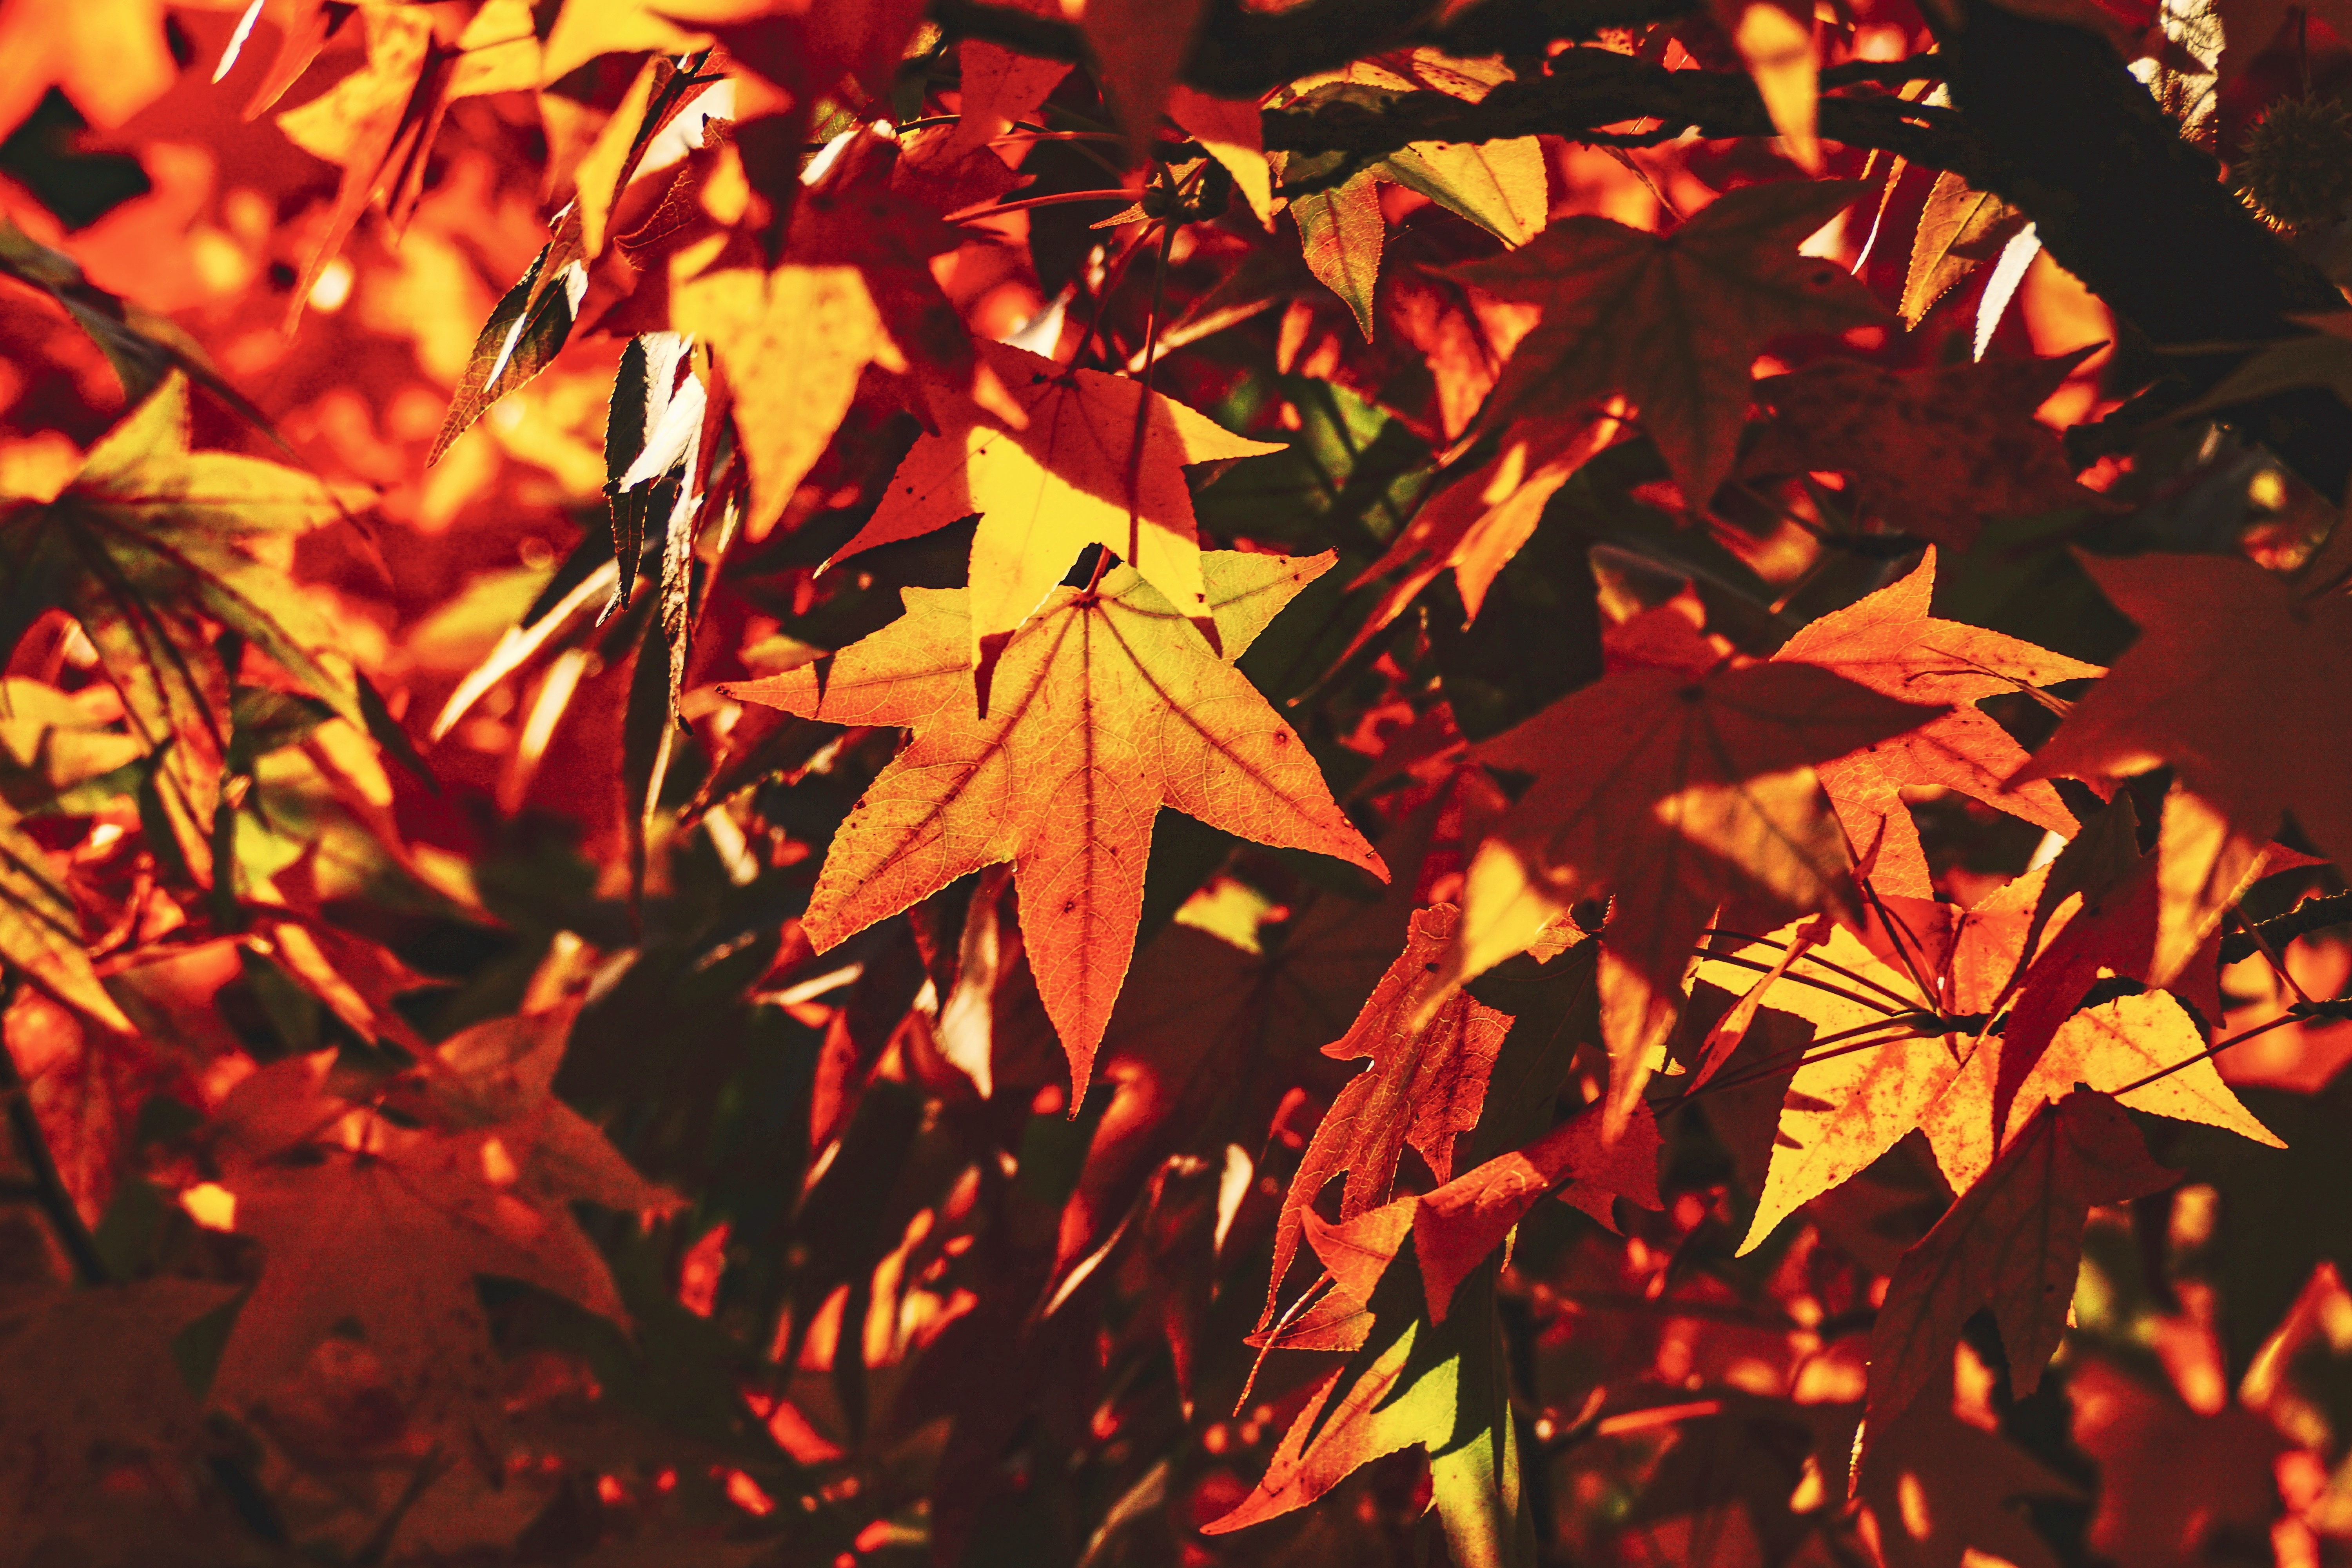 155642 download wallpaper Nature, Autumn, Leaves, Maple, Branch, Sunlight, Shadow screensavers and pictures for free